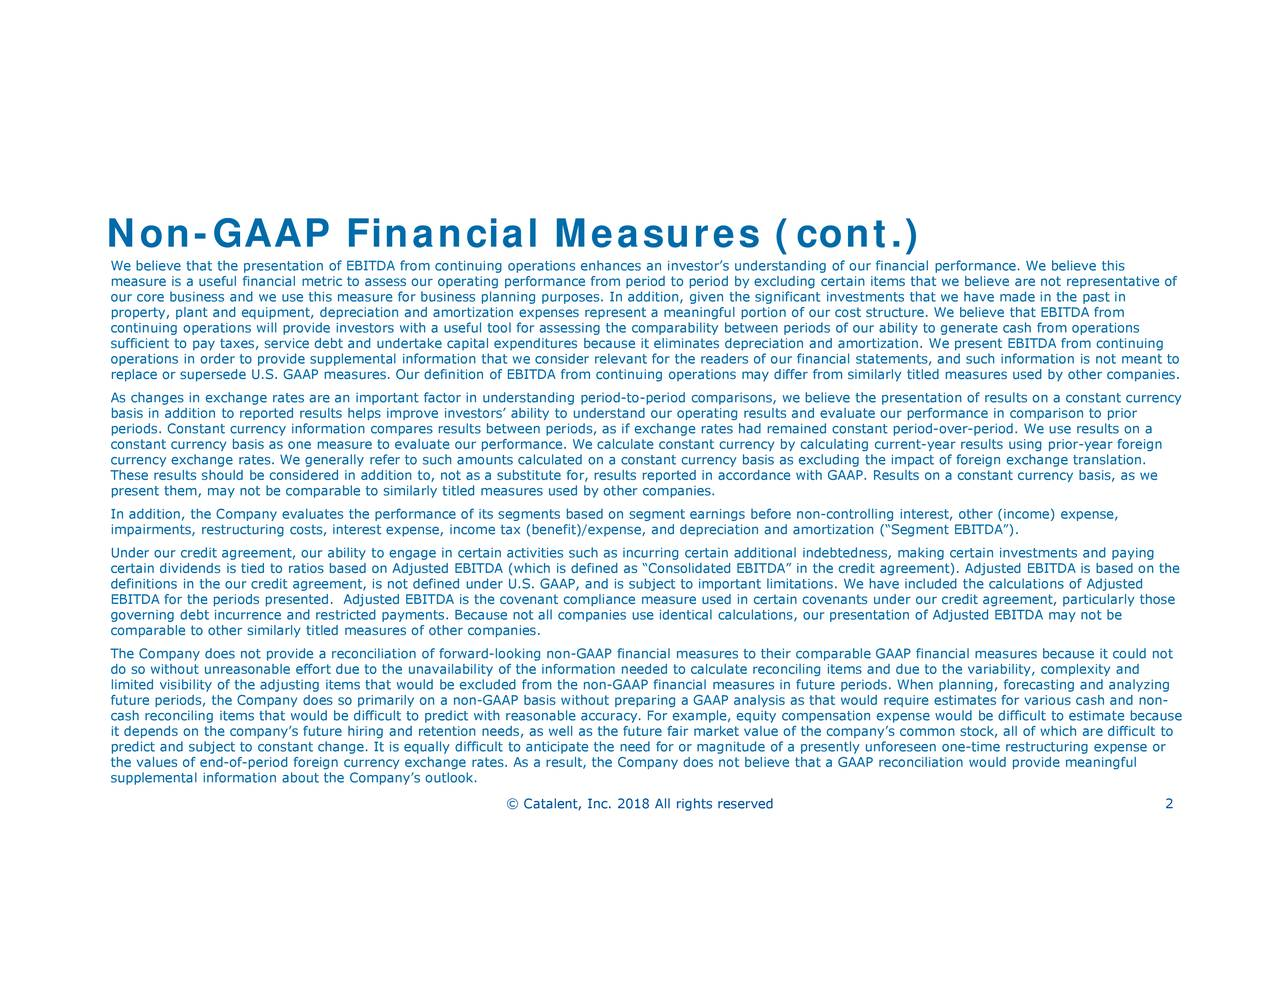 """-period. We usther (income) expense,enmeasureates for various cash and non- formance. We believe thisA fromforeign exchange translation.n stock, all of which are difficult to present EBITDA from ca constant currency basis, as weITlanning, forecasting and analyzingingfule we believe arand such information is not meant to ded the calculations of Adjustedomplexity and to generate cash from operationsison to priorin investments and payien one-time restructuring expense or re non-controlling interest, o erstanding of our finons, we believe the presentation certain covenants under our credi eqet value of the company's common gful portion of our cost structure. We rates had remained constant pecal calculatioGAAP analysis as that would require estim tant currency by calculating current-year operations may differ frod depreciation and amortization (""""Segment EB tant currency basis as excluding the impact of for or magnitude of a presently unforese as """"Consolidated EBITDA"""" in the credit agreement based on segment earnings befo ions enhances an investor's und rmance from period to period by excluding certain items thatrtization. We anding period-to-period covities nant compliance measuras well as the future fair markki ability to understand our operating results and reasonable accuracy. For example,18 All rights reserved ool for assessing the comparability between periods of our ability es results between periods, as if exchangeer companies. and amortizOur definitevaluate our performance. We calculate conss reported in accordance with GAAP. Results on is equally difficult to anticipate the need expense, income tax (benefit)/expense, an rally refer to such amounts calculated on a cons ed measures of other companies. debt and undertake capital expend os based on Adjusted EBITDA (which is defined We believe that the presentation of EpreIn additicerdaEBIgocomTphaealimited itpretdictaluessobfenctdofconrsitoadneaingec.rrency exchange rates. As a result, the Company does not believe t"""